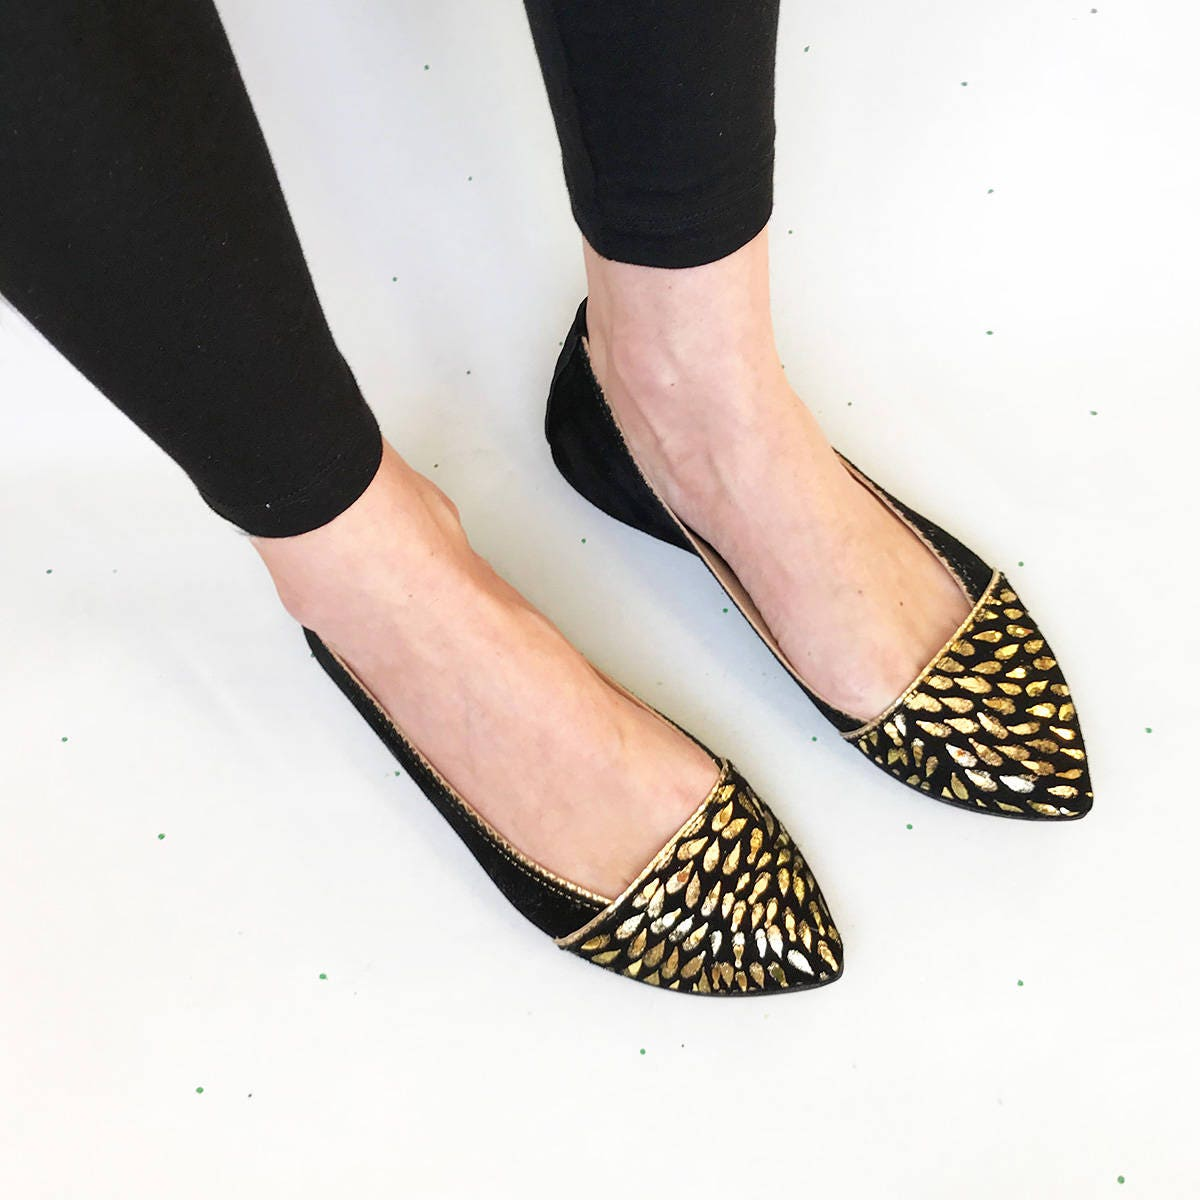 D'Orsay Pump Shoes. Pointy Ballet Flats. Pointed Pointy Shoes. Pointy Flats. Pointed Flats. Toe Shoes. Black Ballet Flats. Party Shoes. Gold and Black shoe 915167